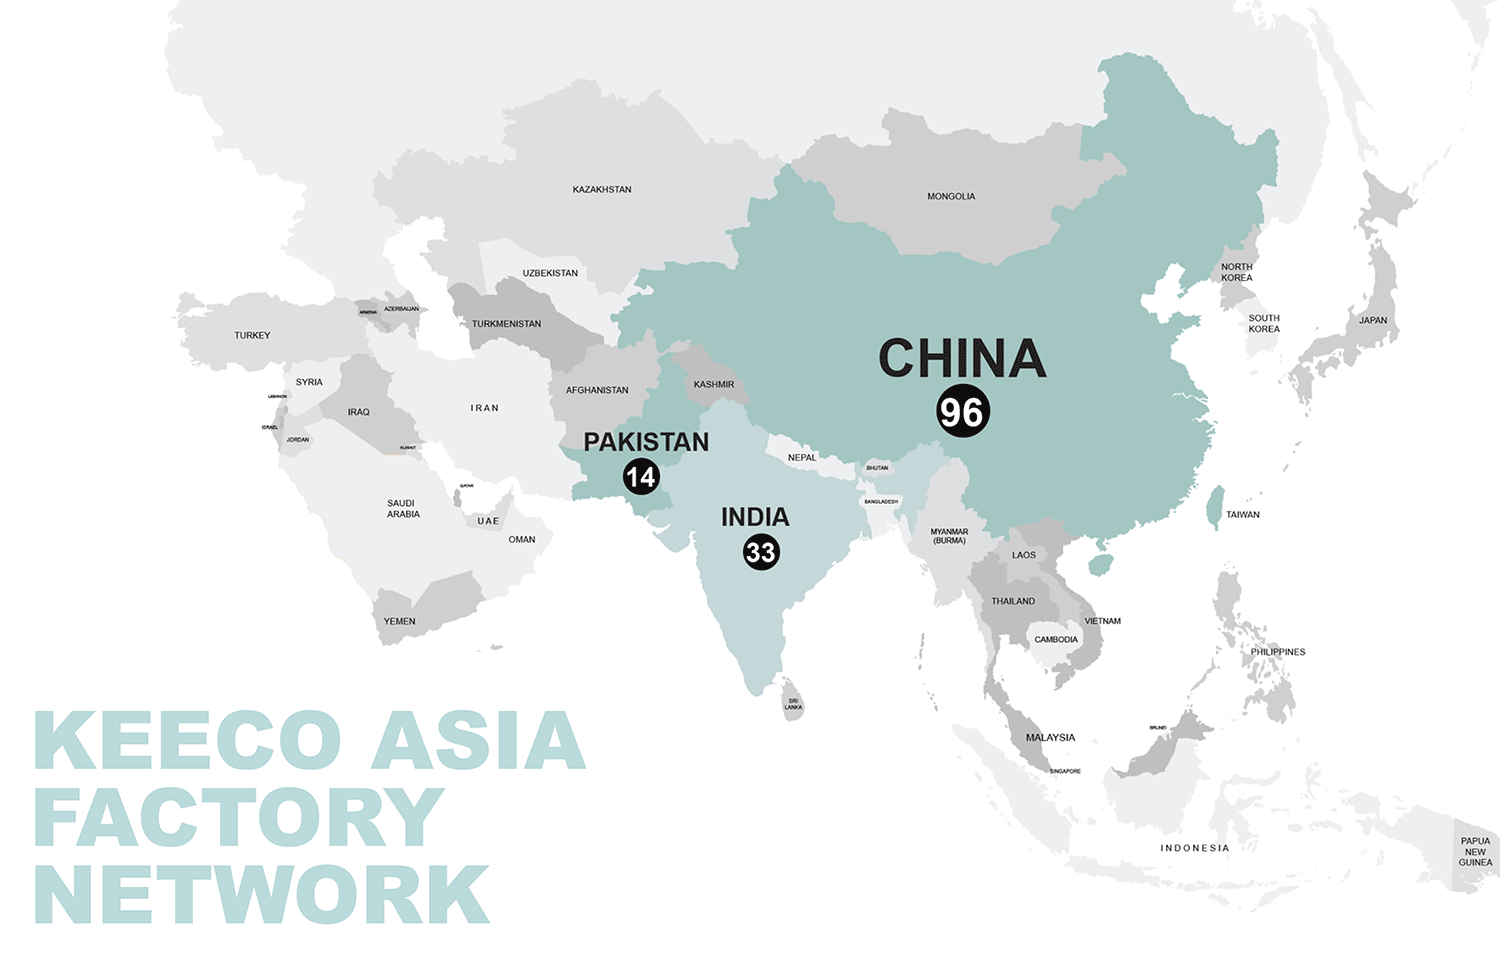 Asia Factory Network